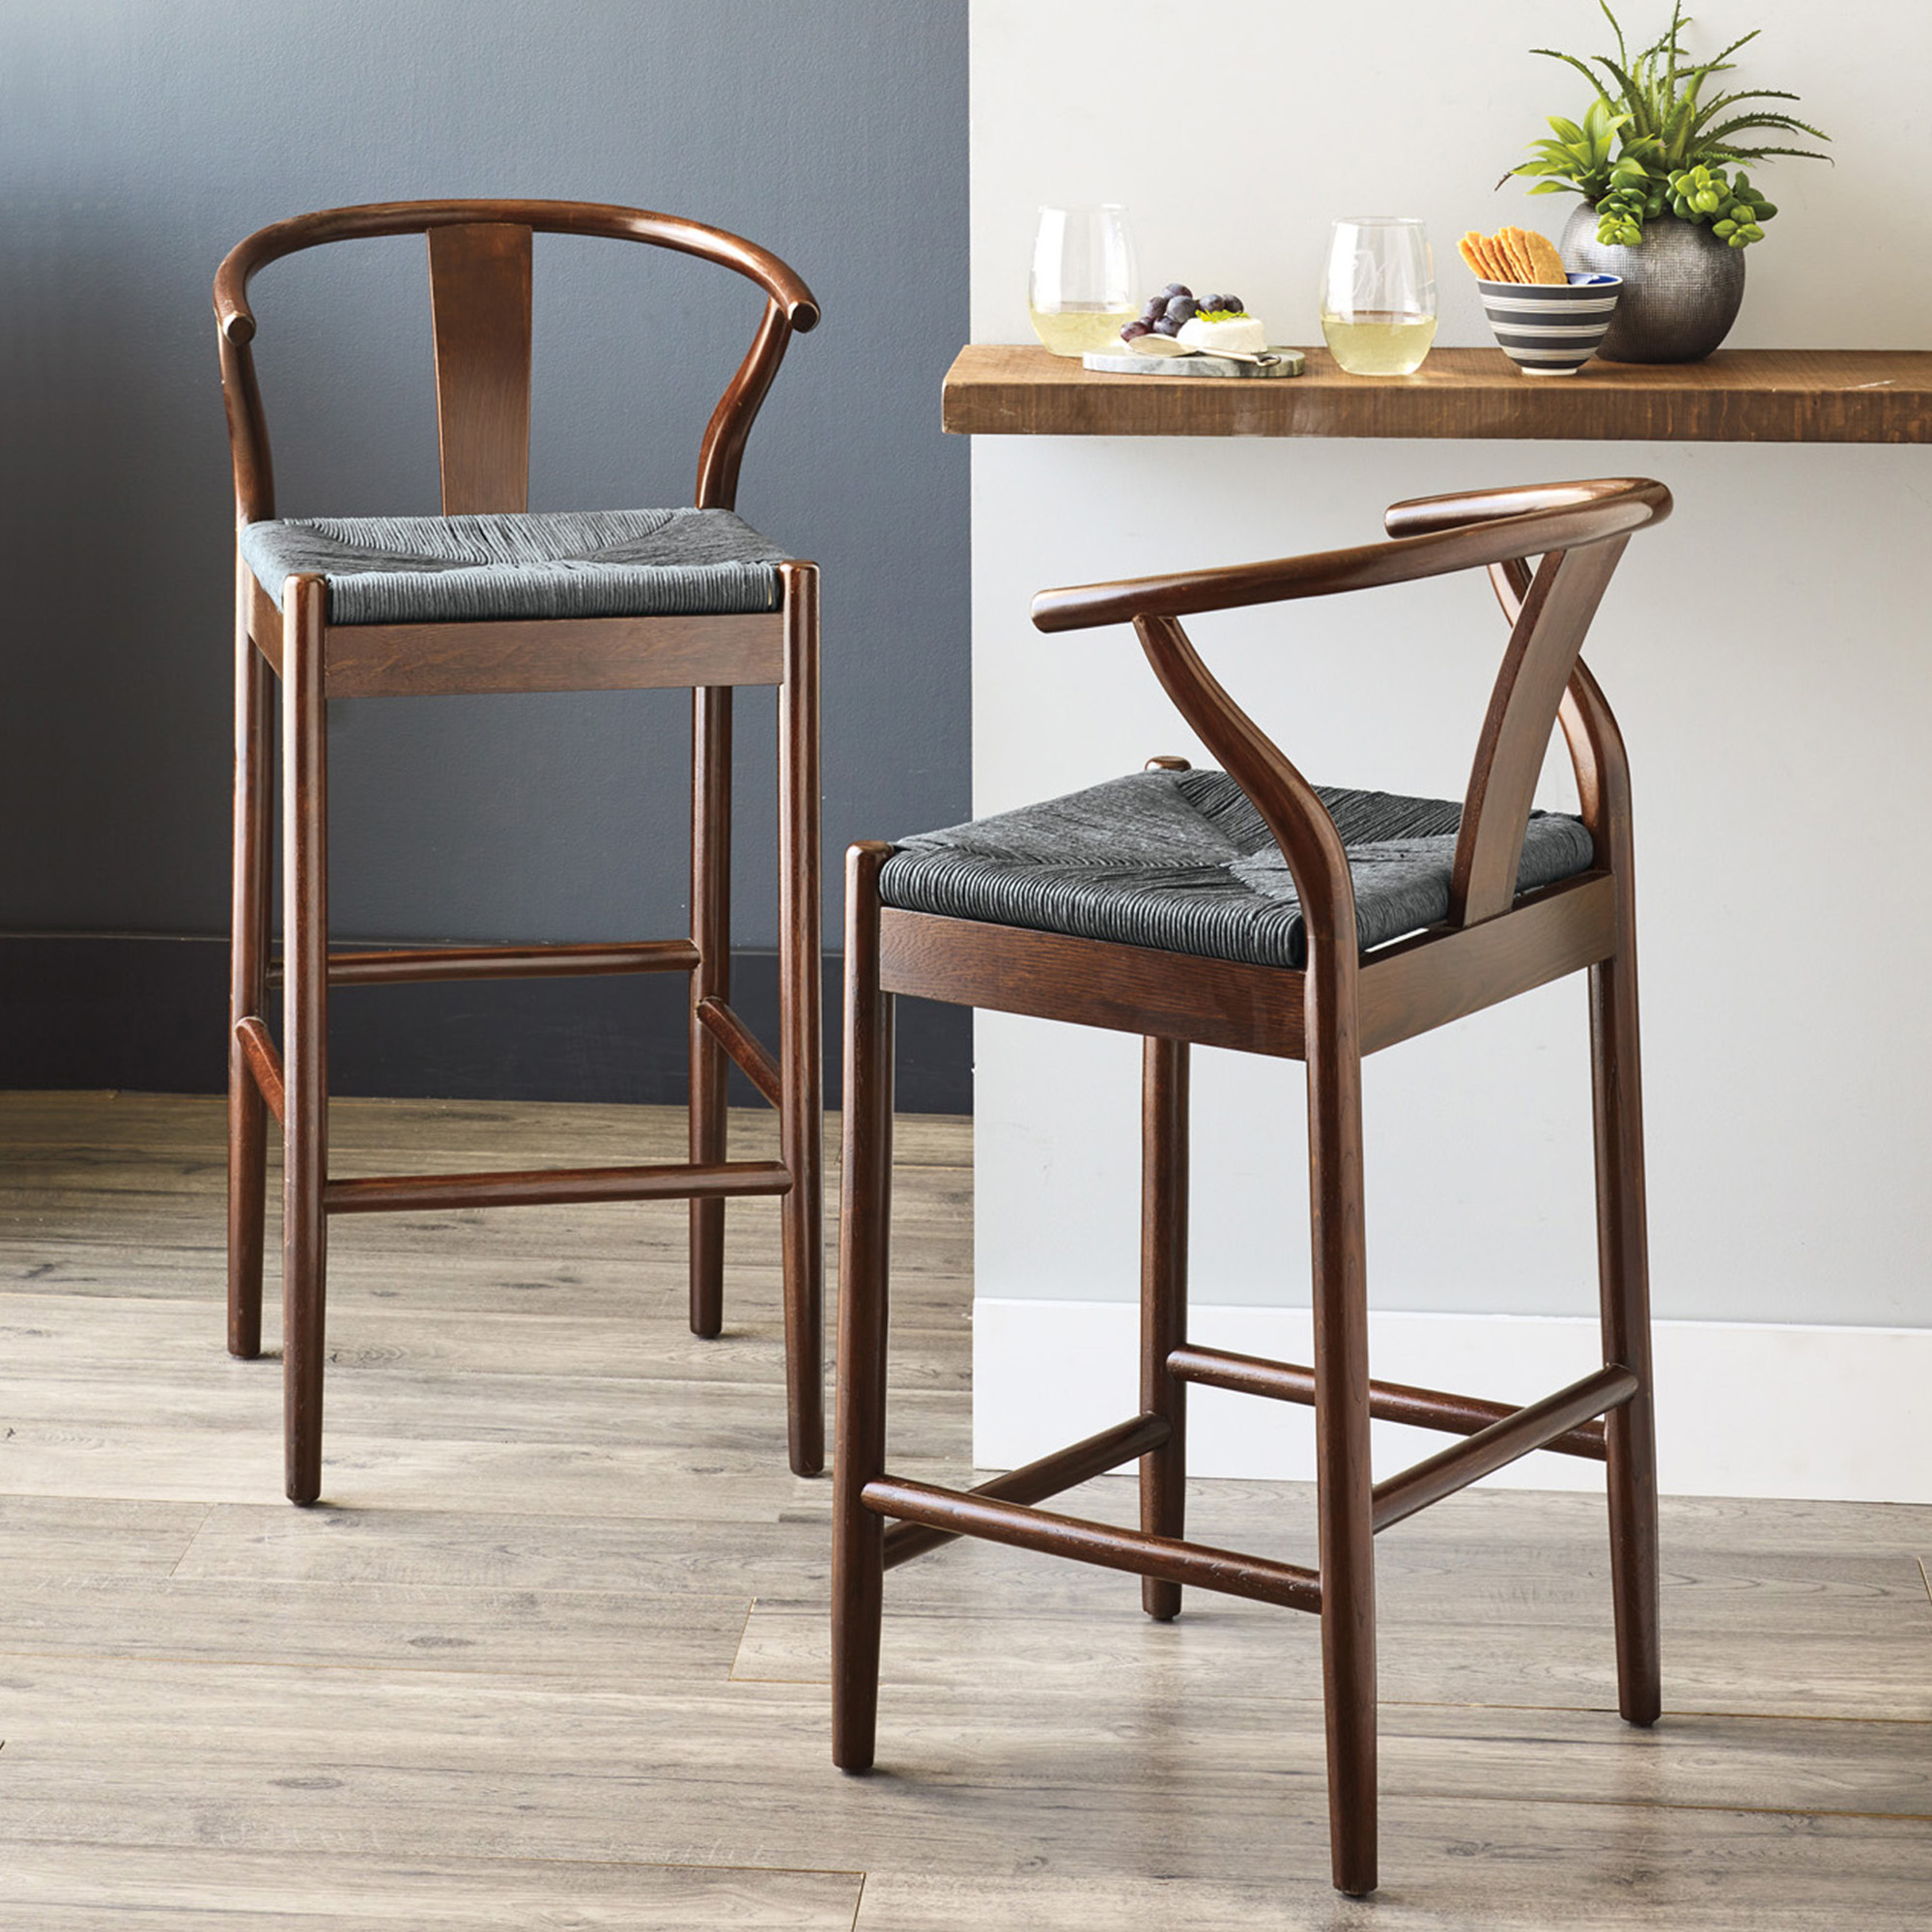 Horseshoe Bar And Counter Stools, Espresso